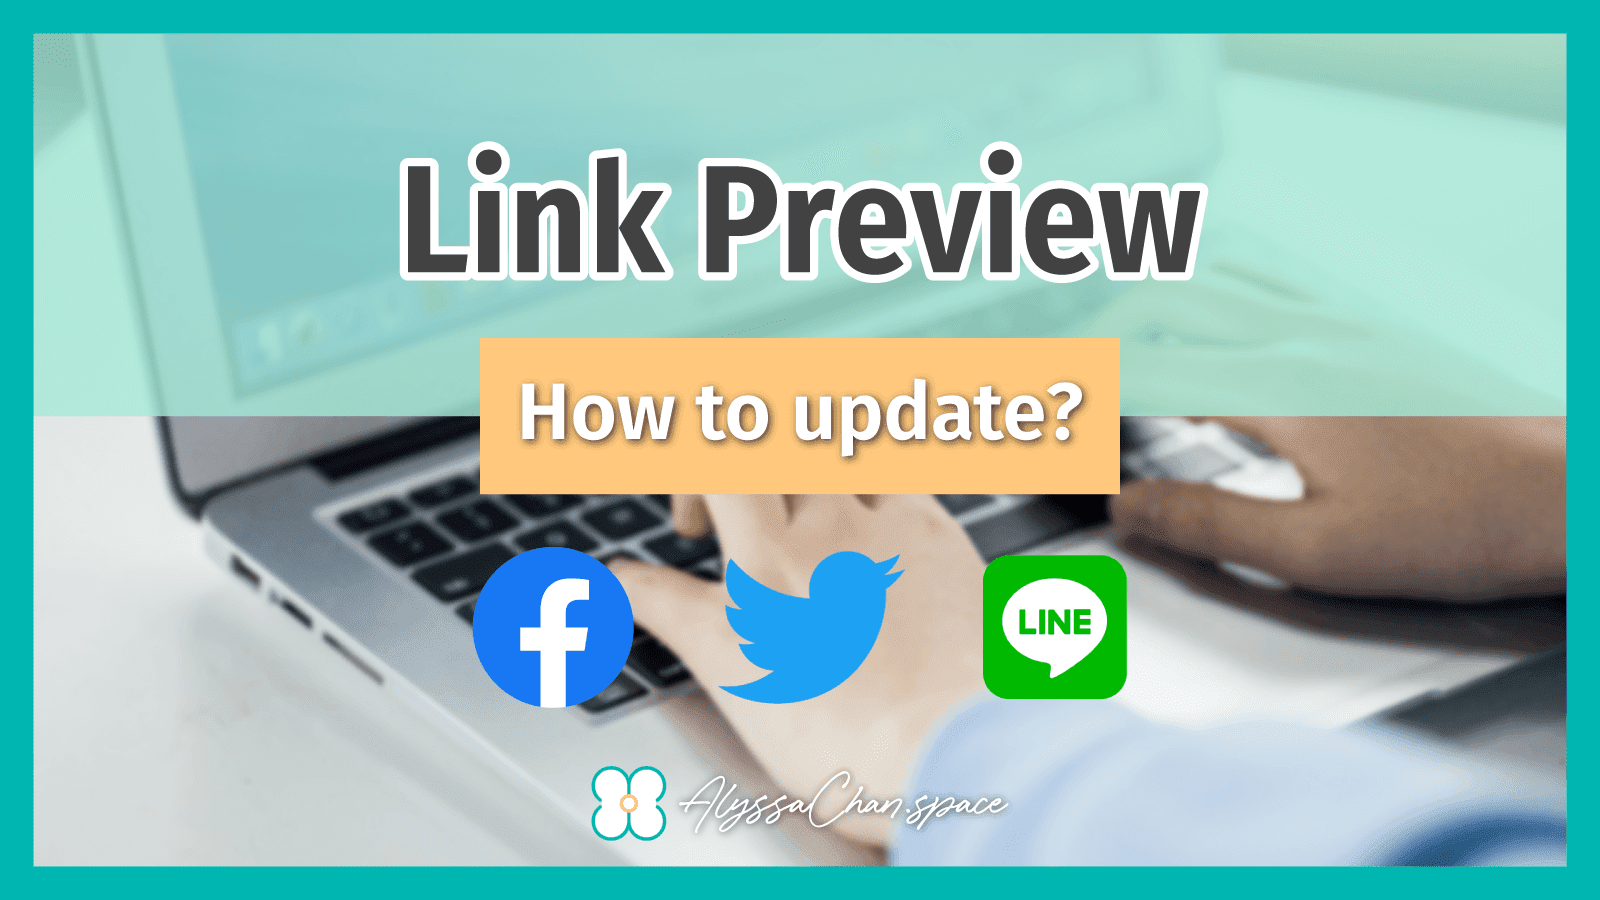 How to Update Link Preview on Facebook / Twitter / LINE?